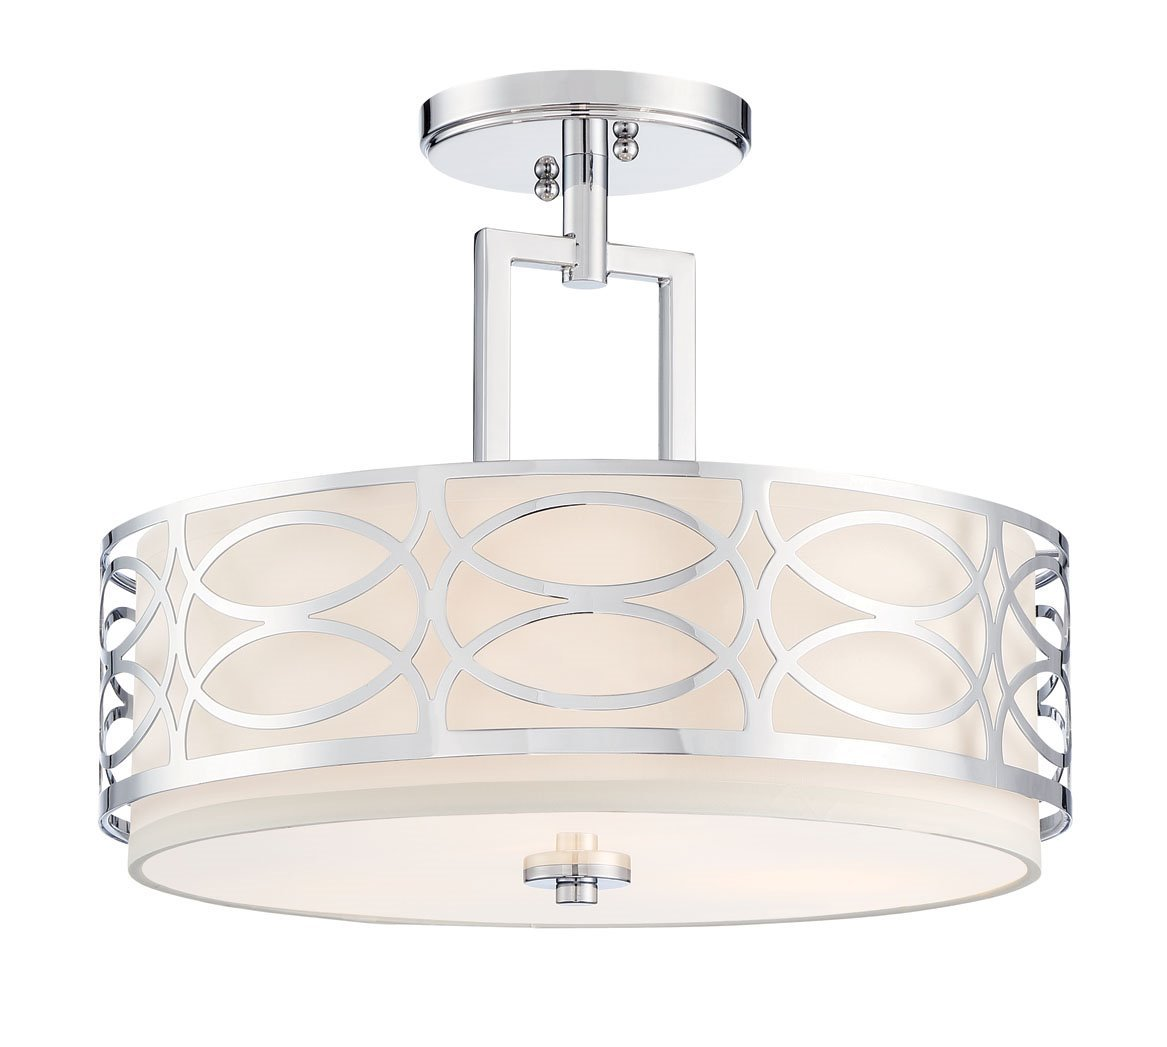 "Kira Home Sienna 15"" 3-Light Semi Flush Mount Ceiling Light + Glass Diffuser, Chrome Finish"